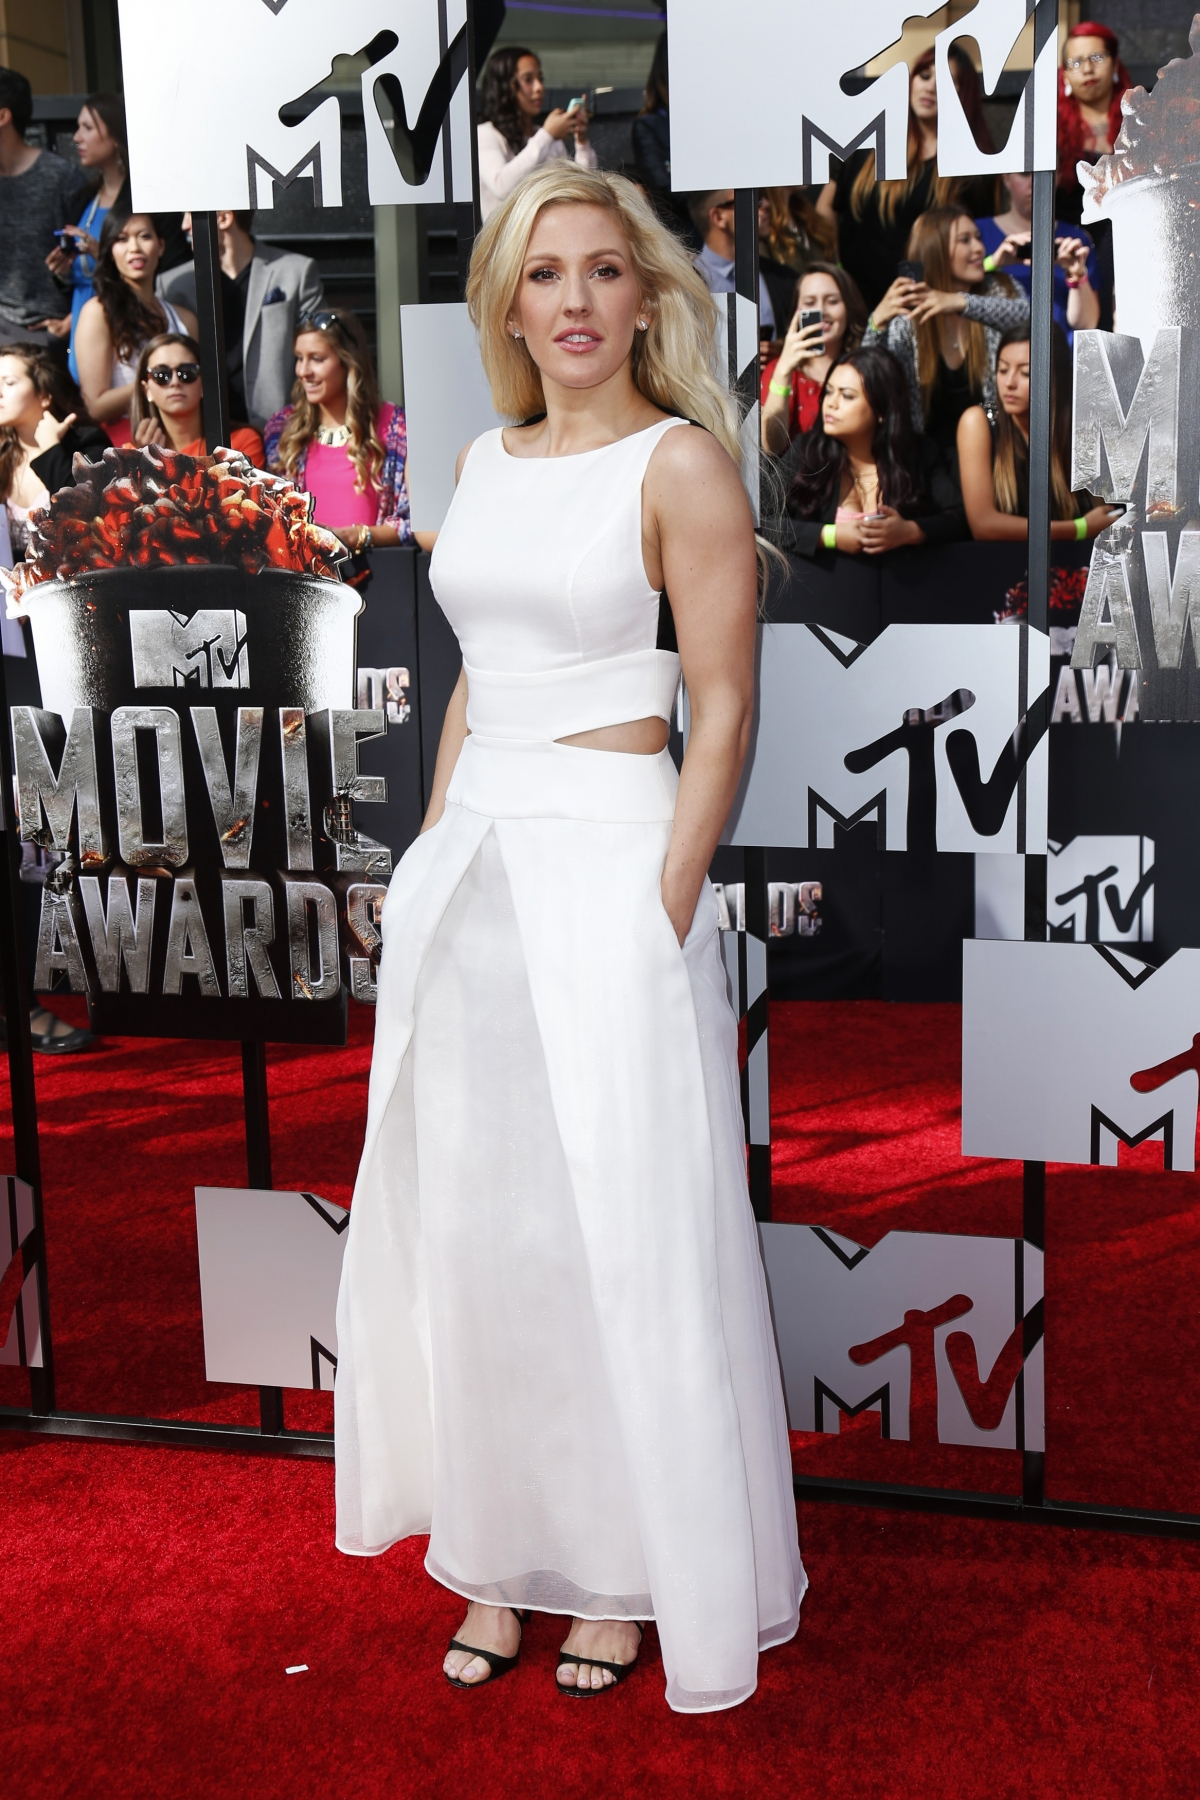 Singer Ellie Goulding arrives at the 2014 MTV Movie Awards in Los Angeles, California